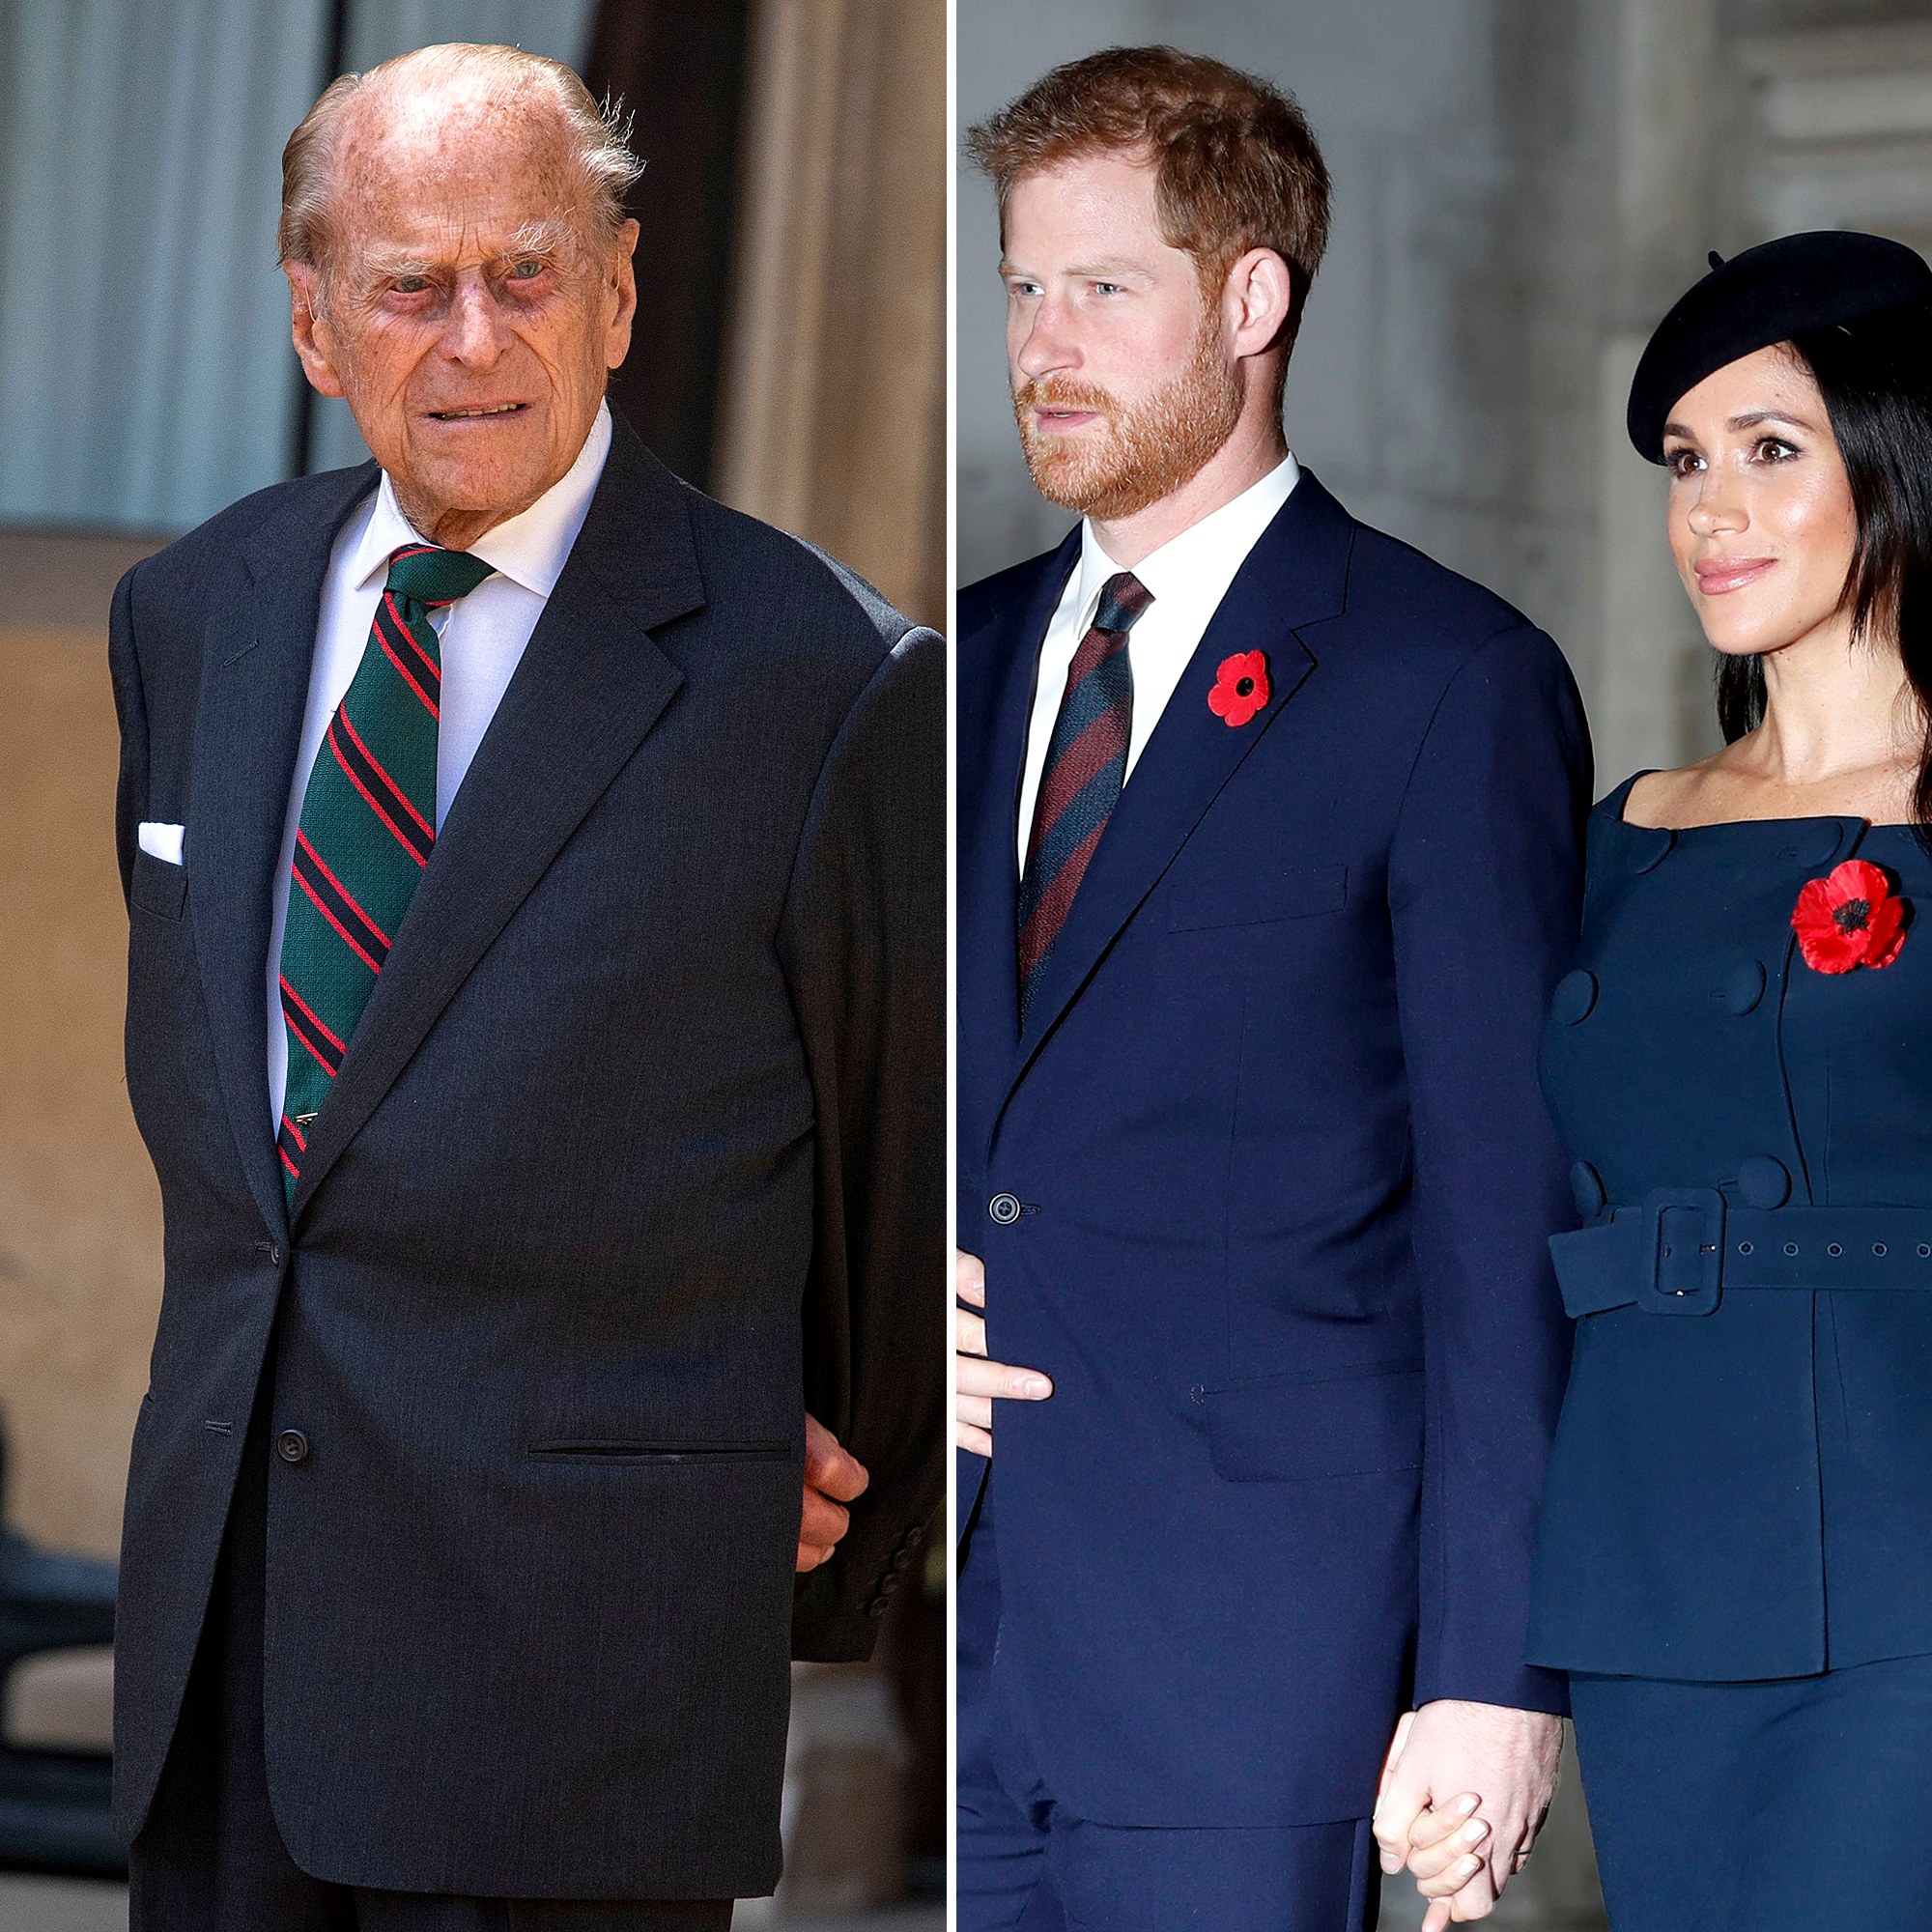 Prince Philip 'Can't Fathom' Why Harry, Meghan Markle Stepped Away